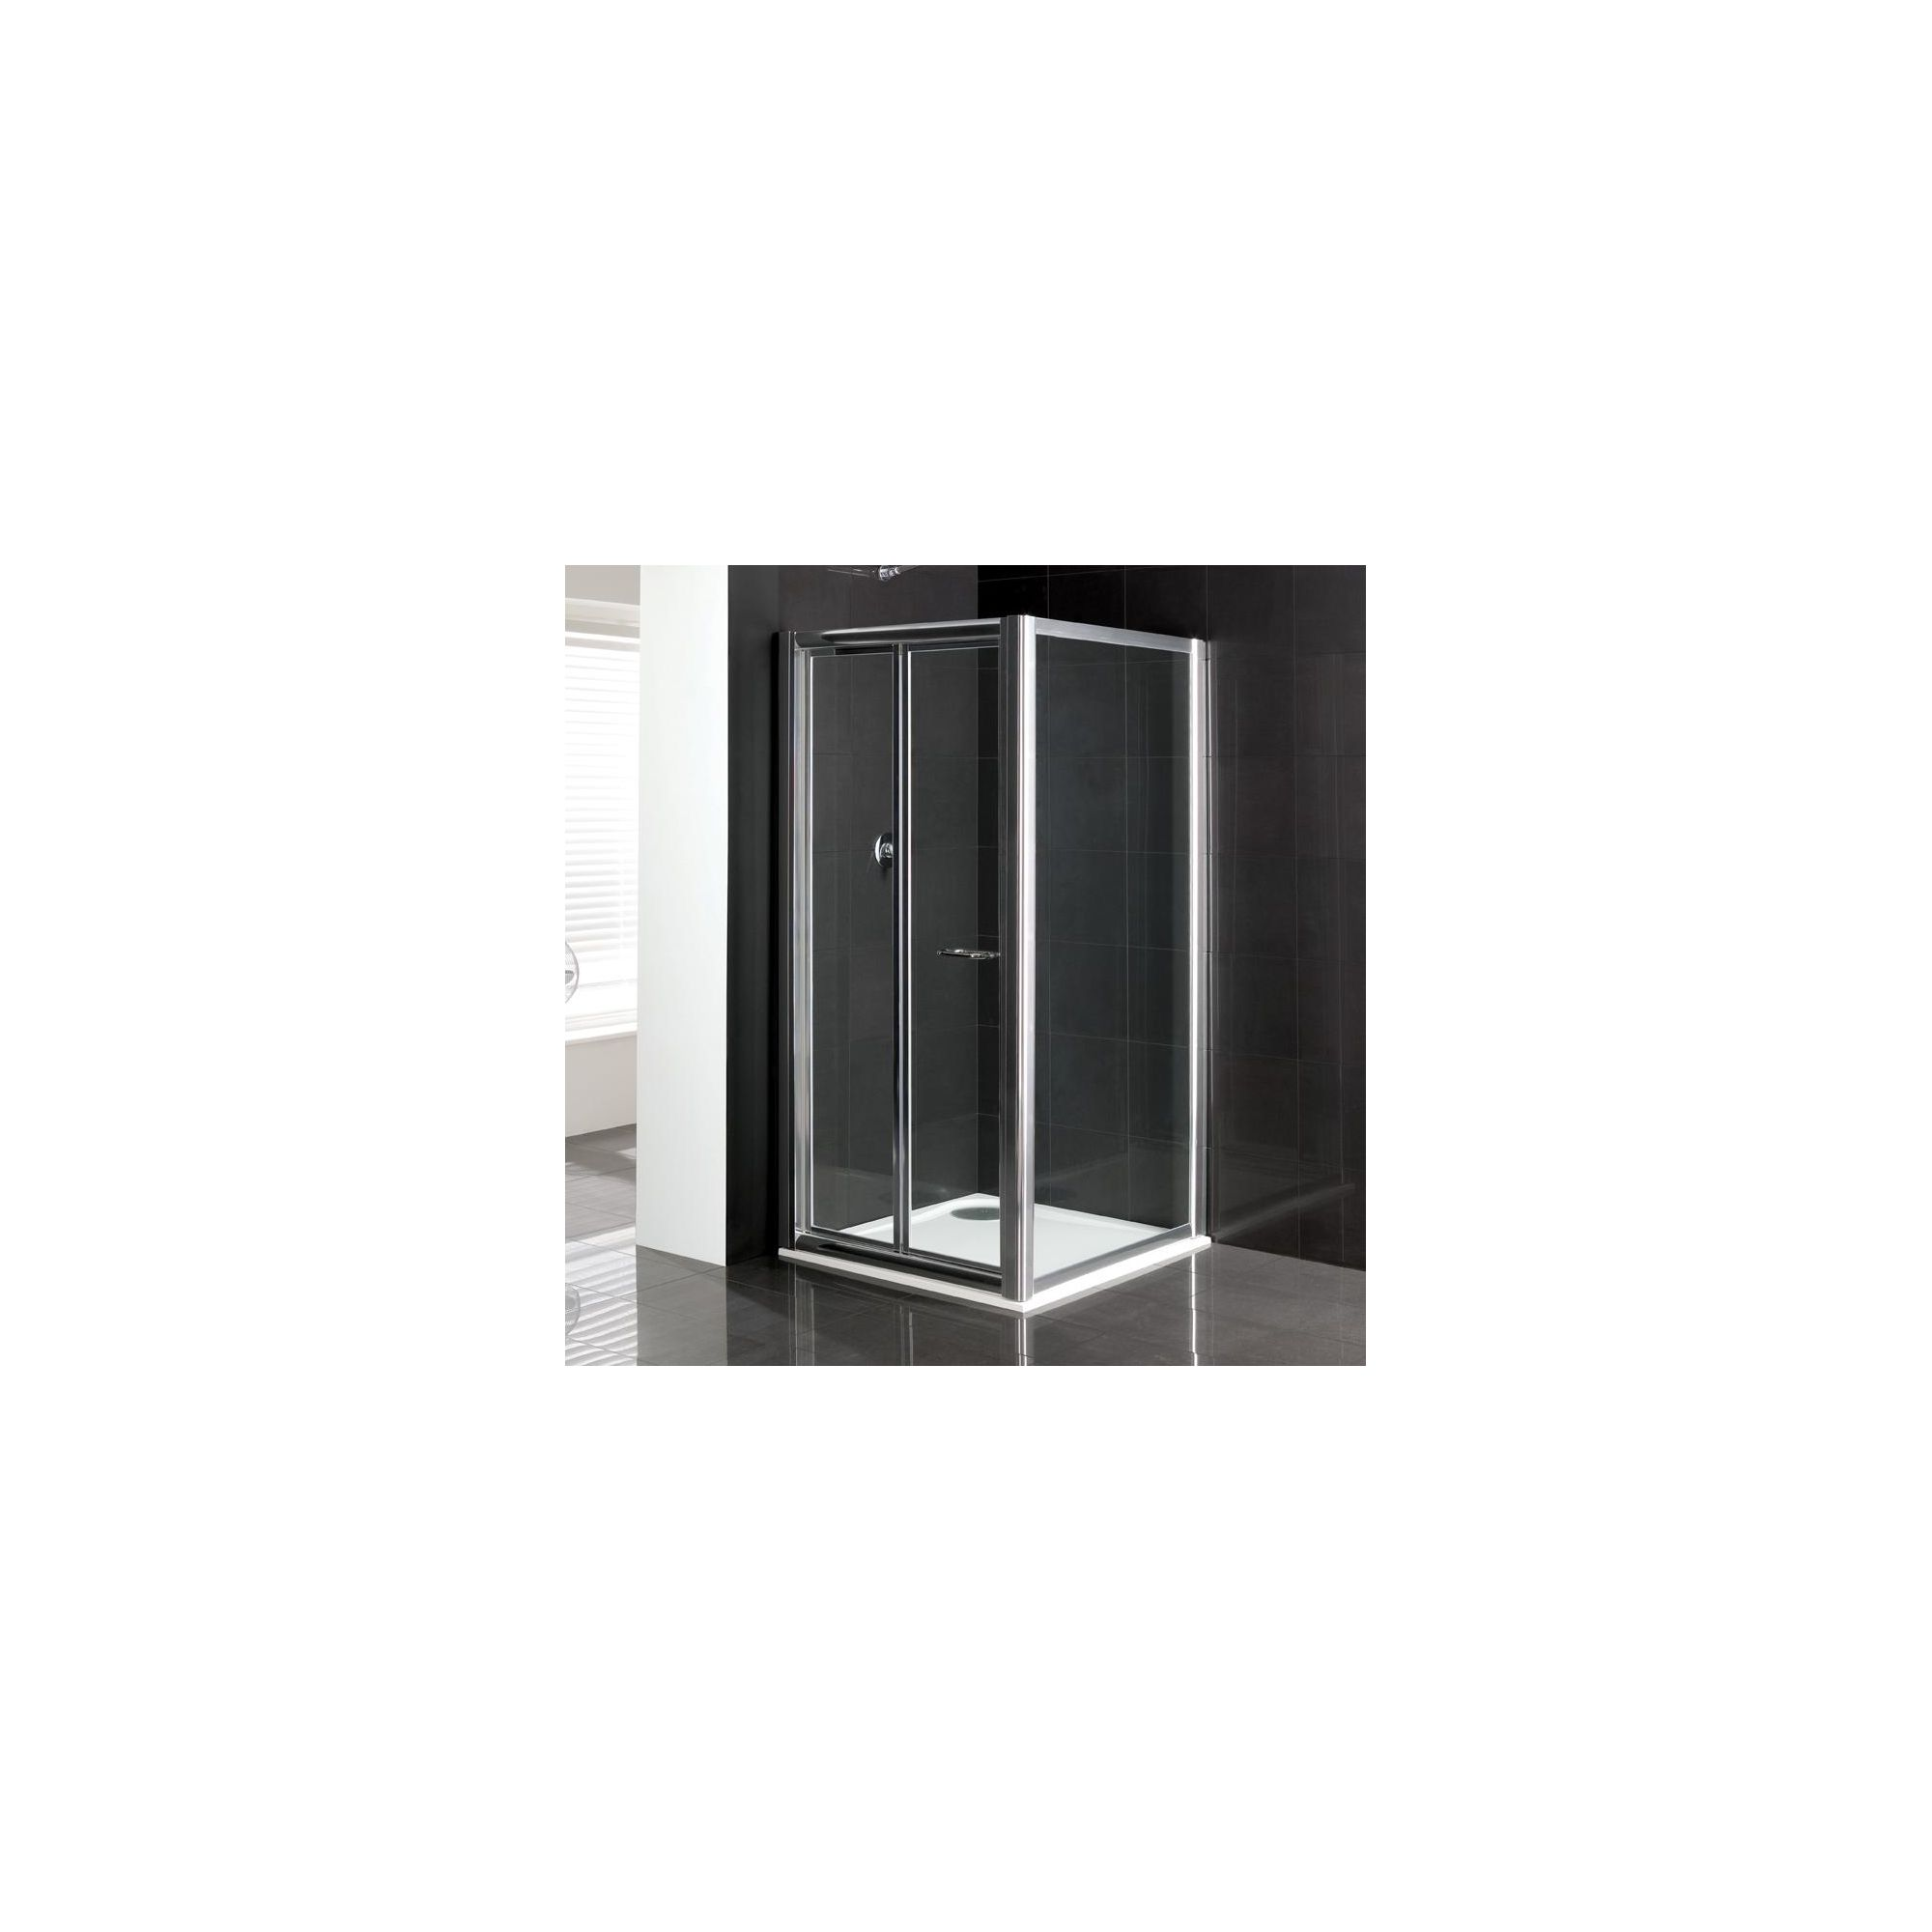 Duchy Elite Silver Bi-Fold Door Shower Enclosure, 900mm x 900mm, Standard Tray, 6mm Glass at Tesco Direct